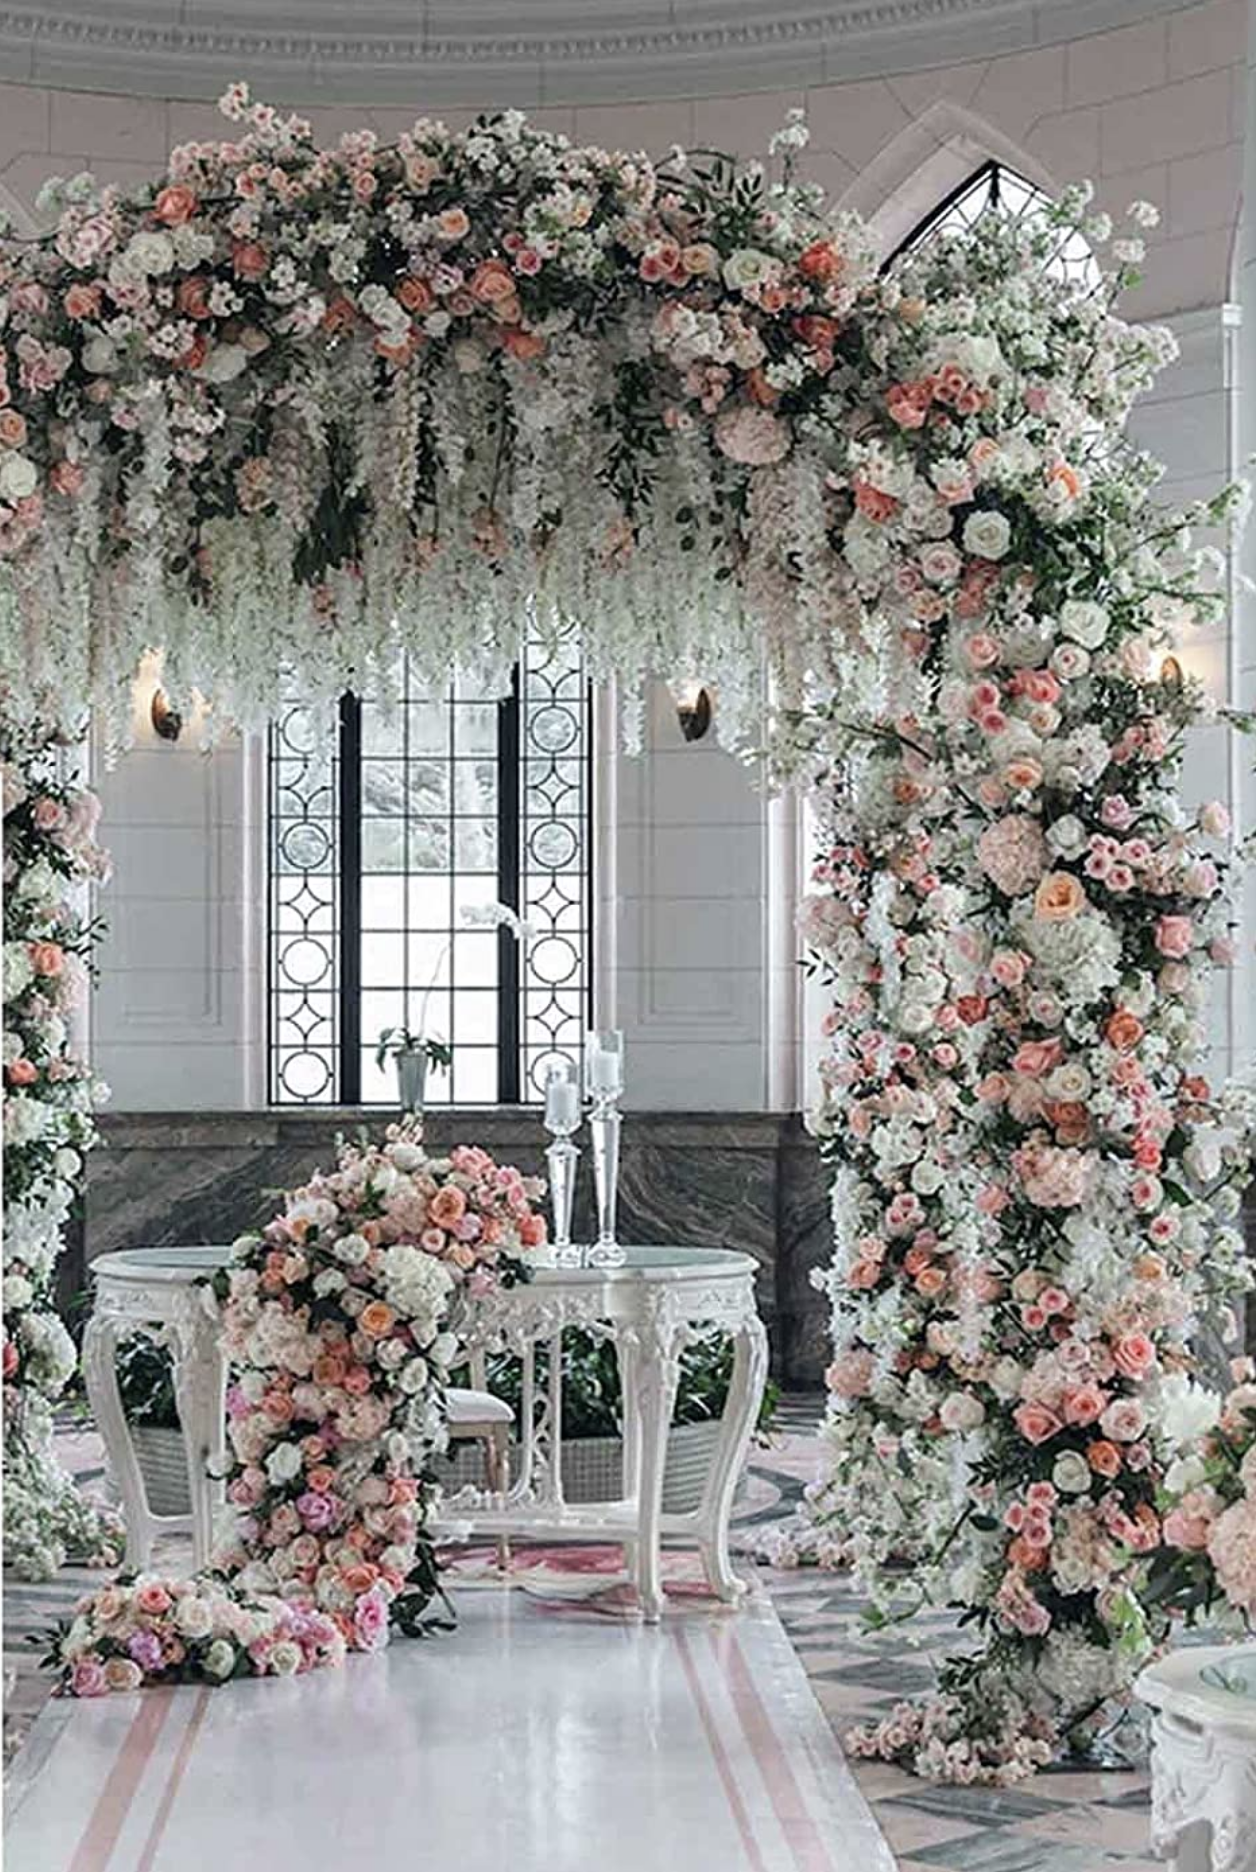 Metal rose arch used for a romantic wedding  bower.